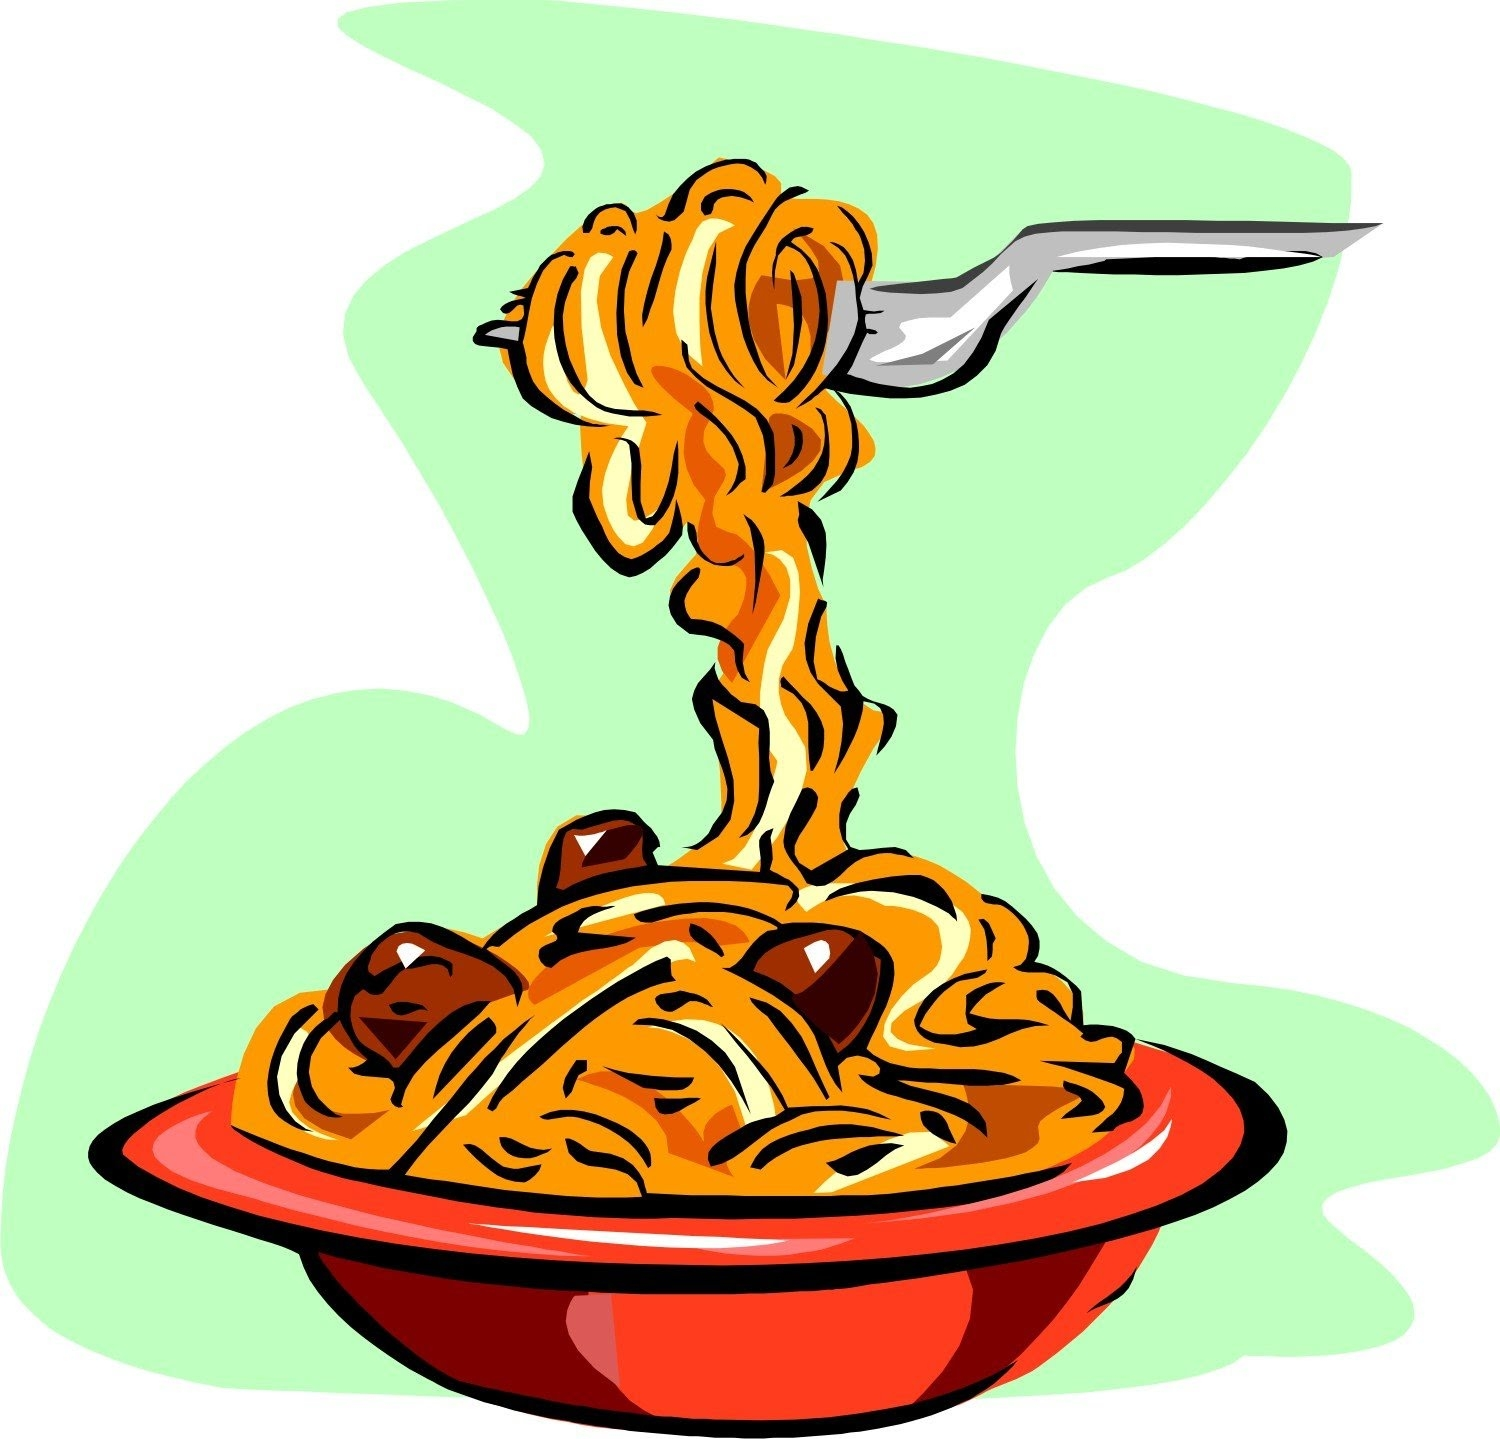 Unique jokingart com download. Spaghetti clipart